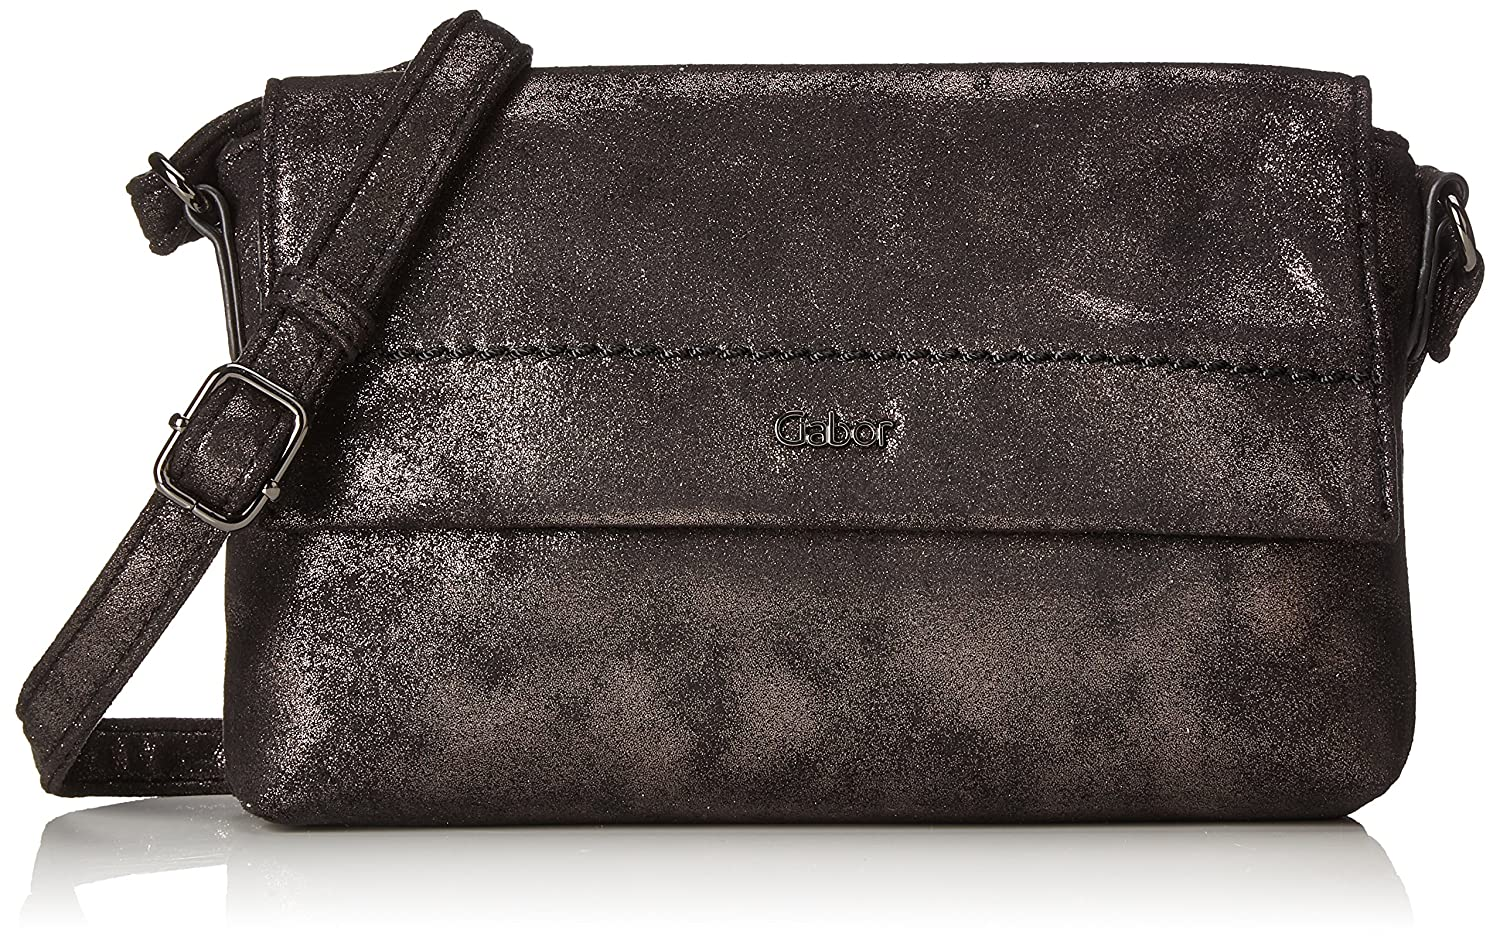 Gabor Women/'s Bella Clutch